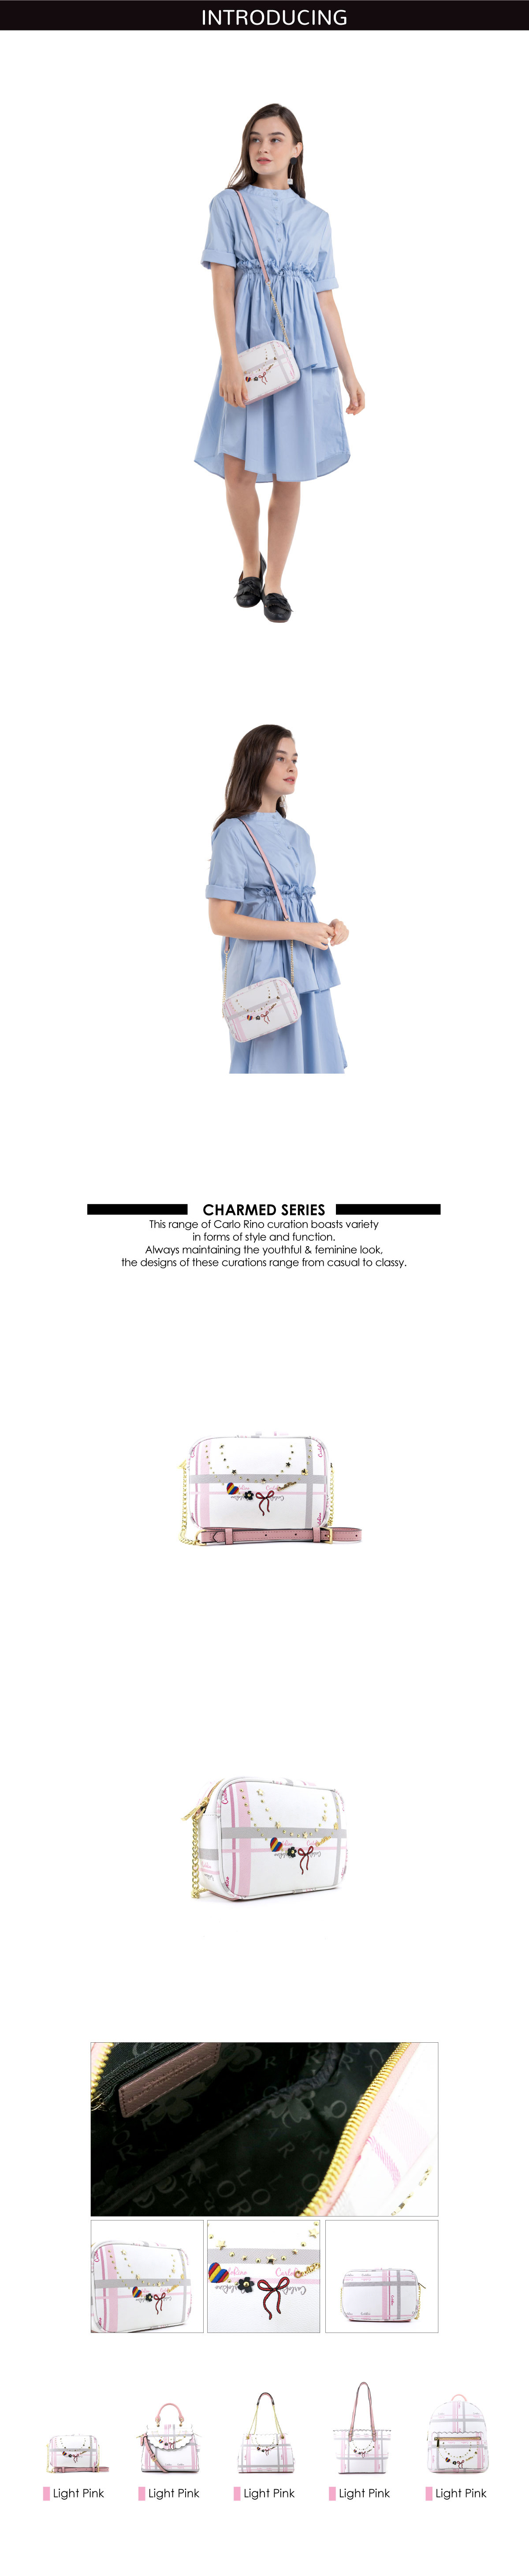 0304740E 001 34 - Embroidered Charmed Series Top Zip Cross Body